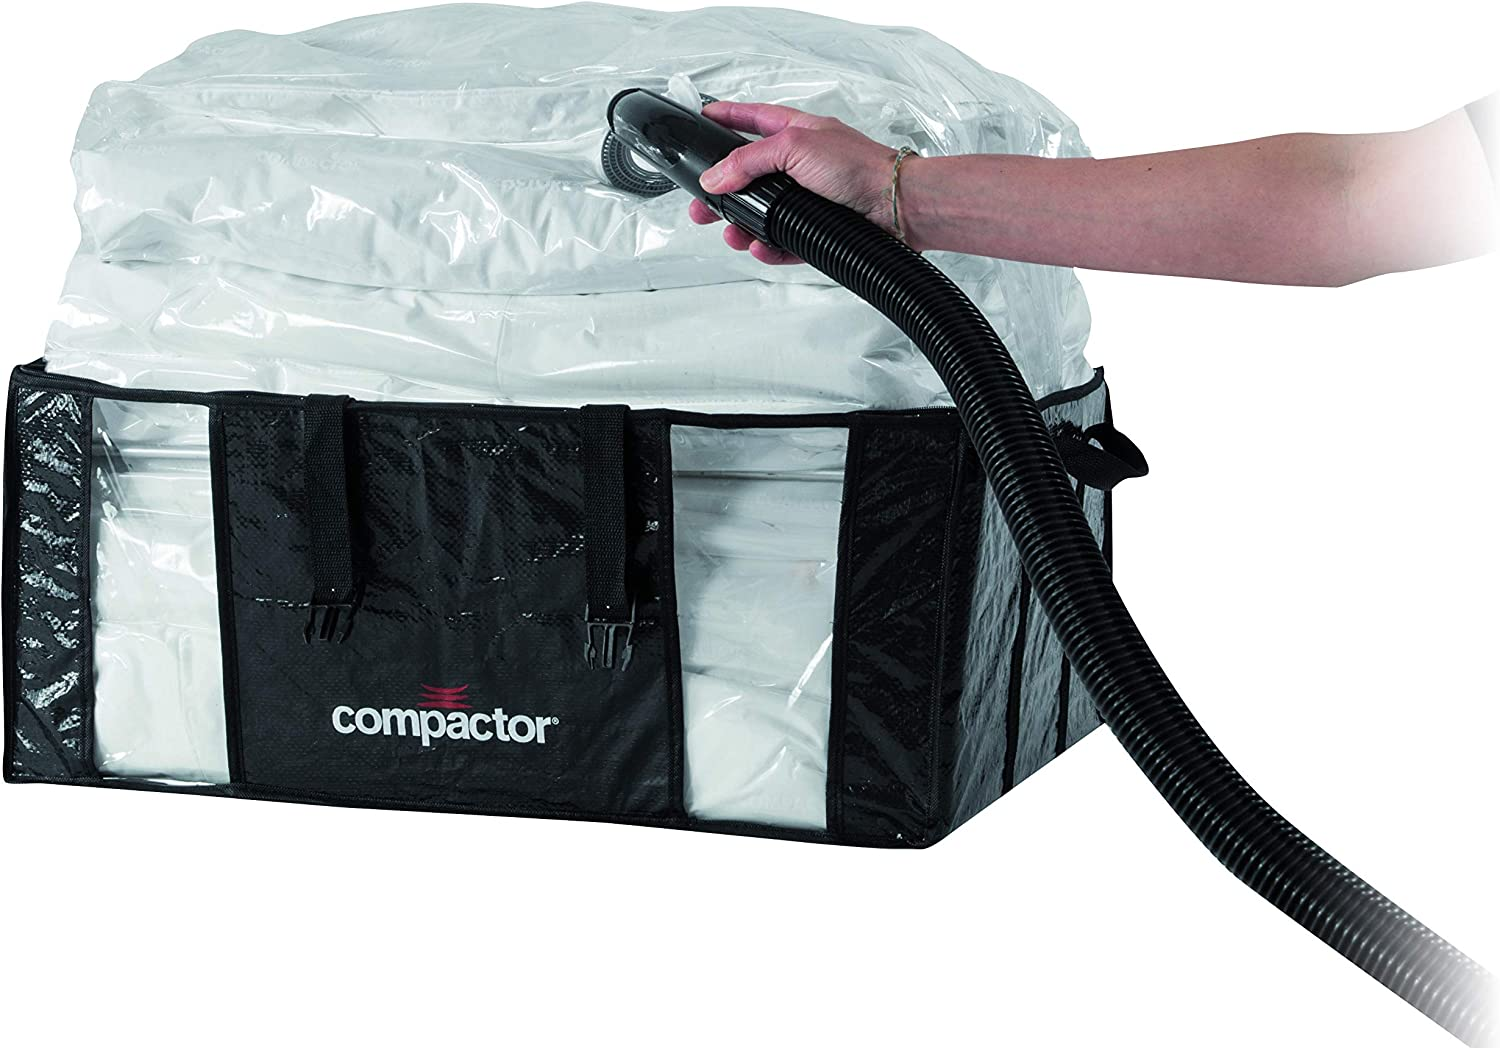 Compactor Space Saving Vacuum Storage Bags Dust Free Storage for Clothing Bedding Pillows - Parisienne XXL (25.5x10.5x19.5)